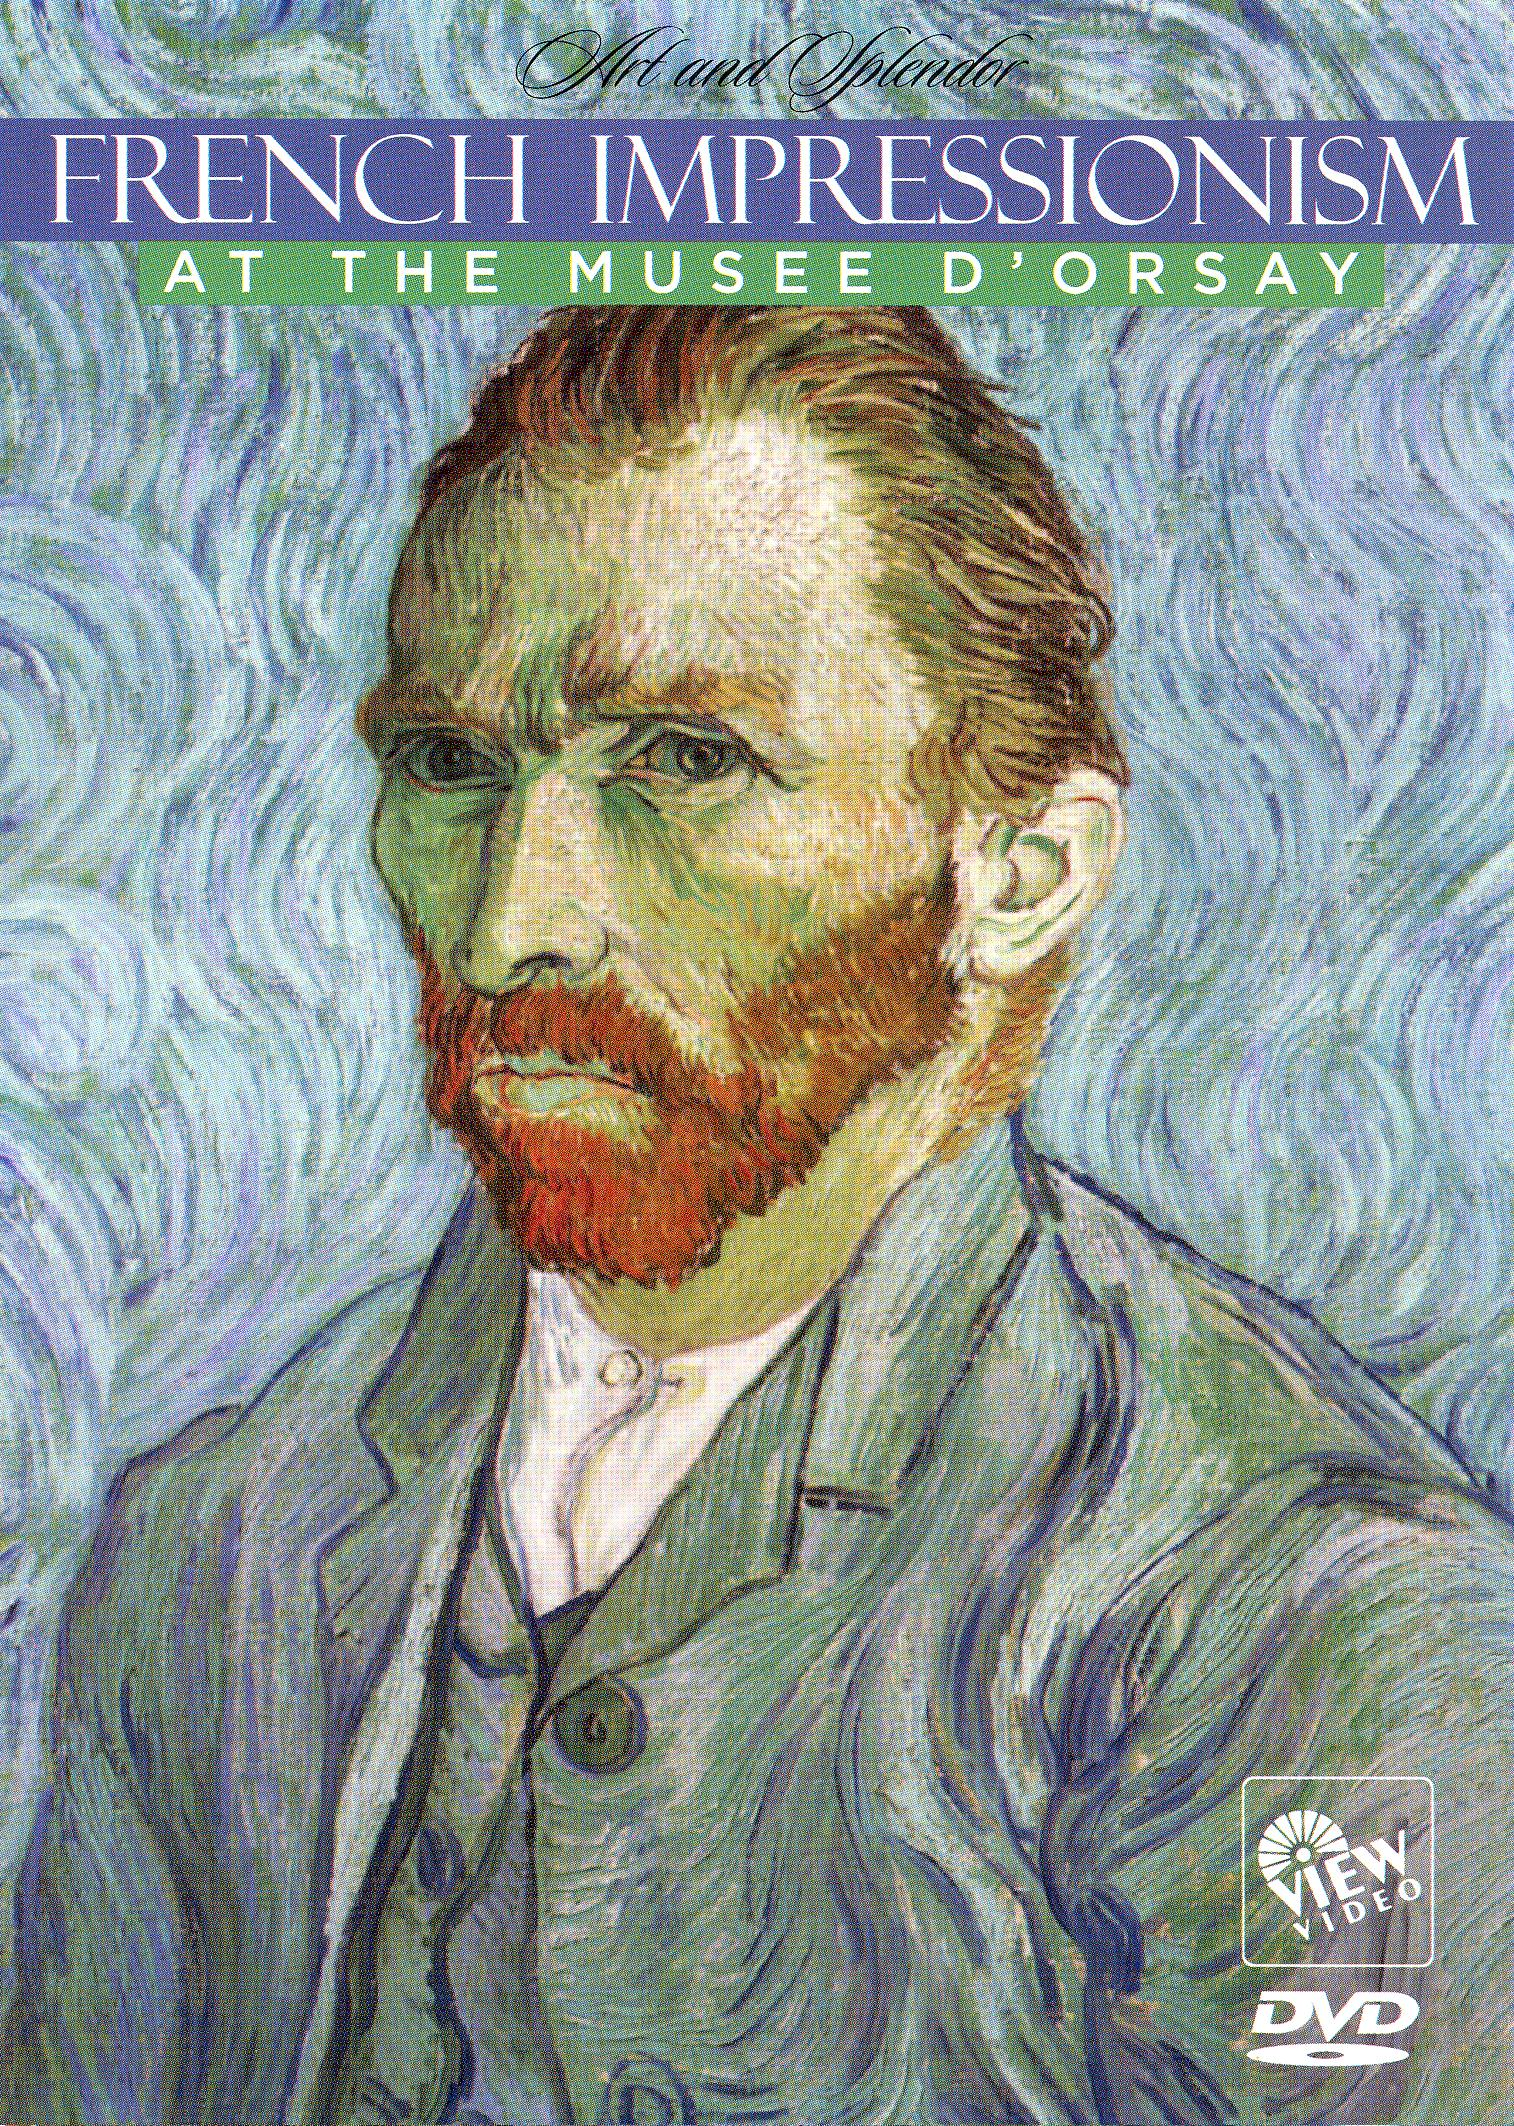 French Impressionism at the Musee d'Orsay